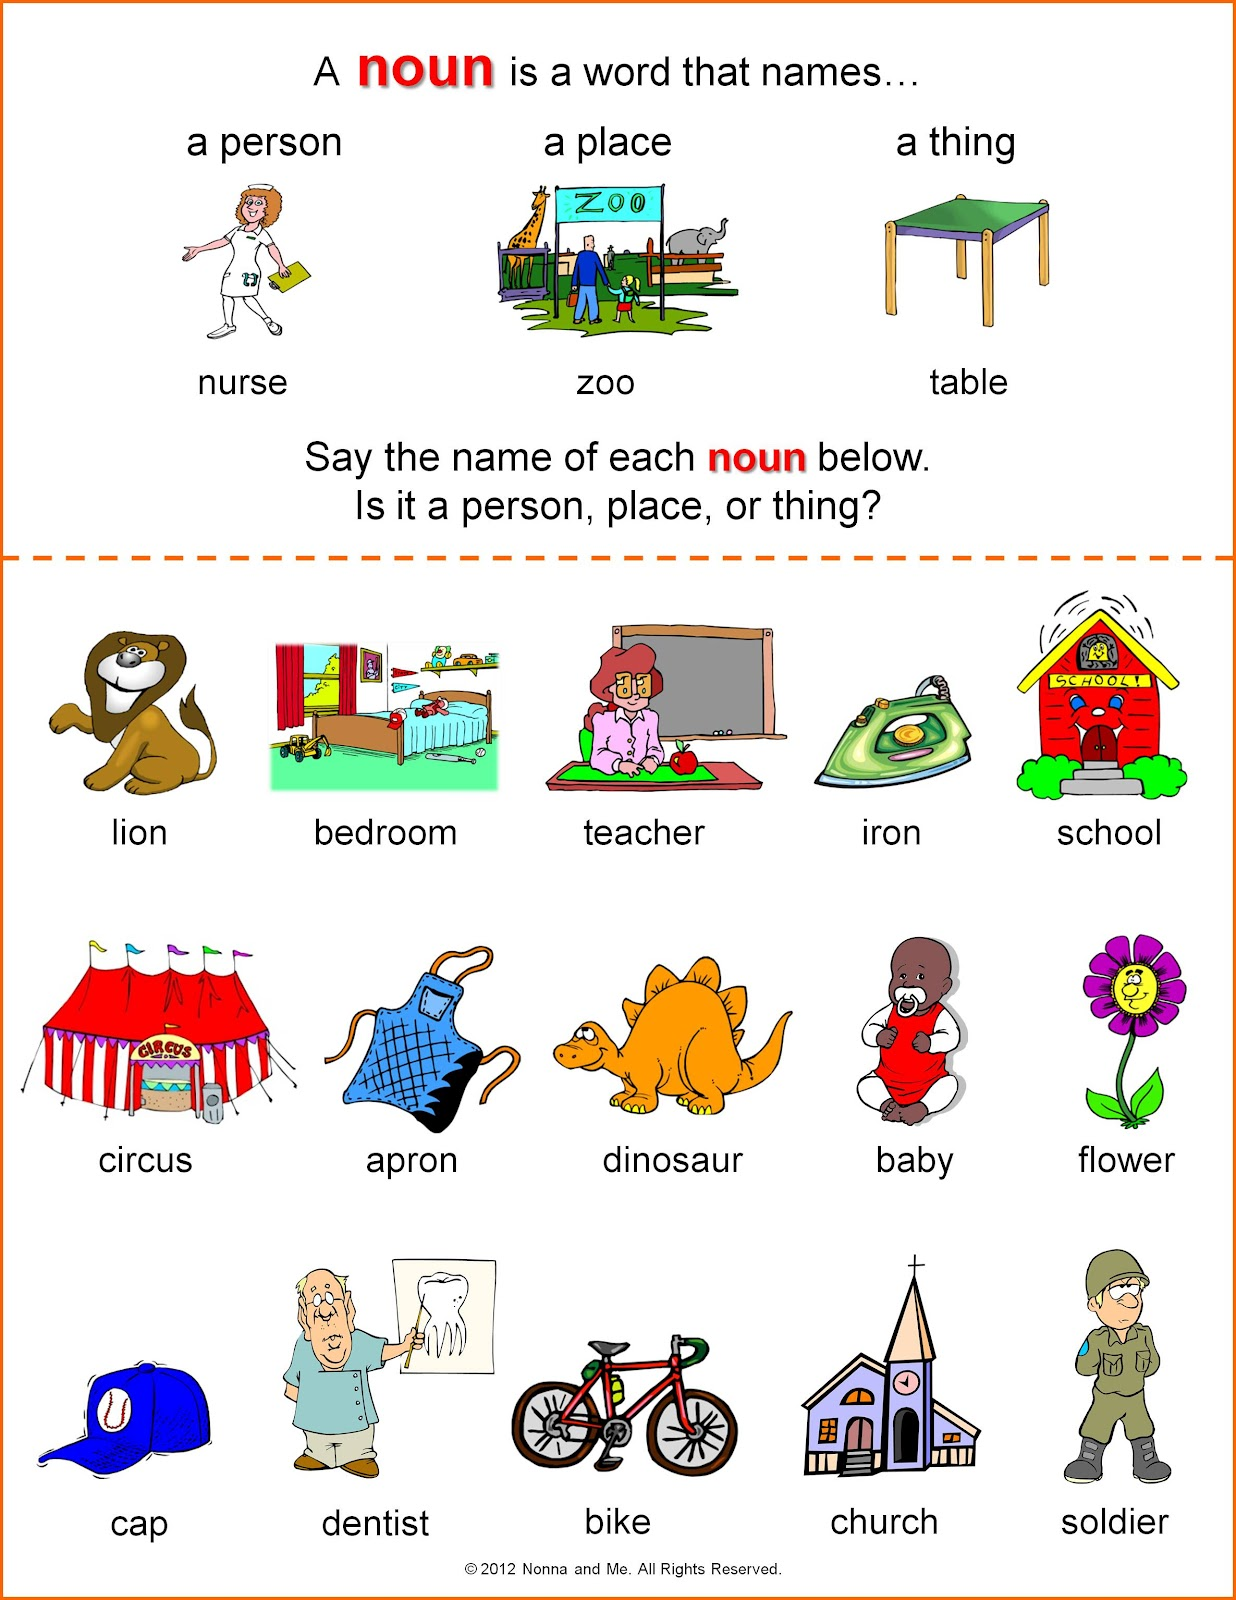 Nonna and Me Clown Town Crown Learning About Nouns